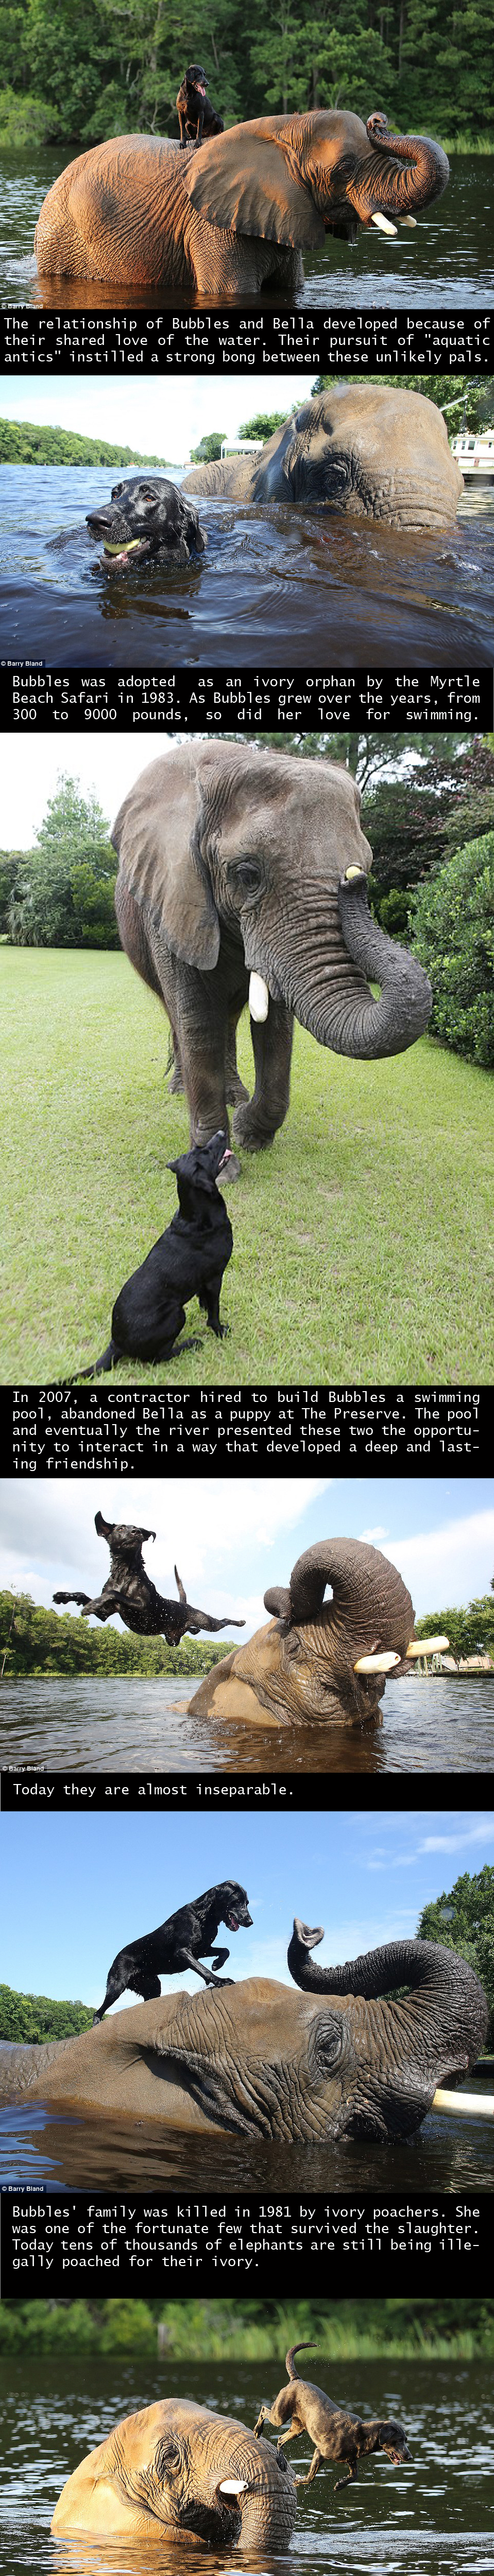 Black Lab and Elephant Become Friends